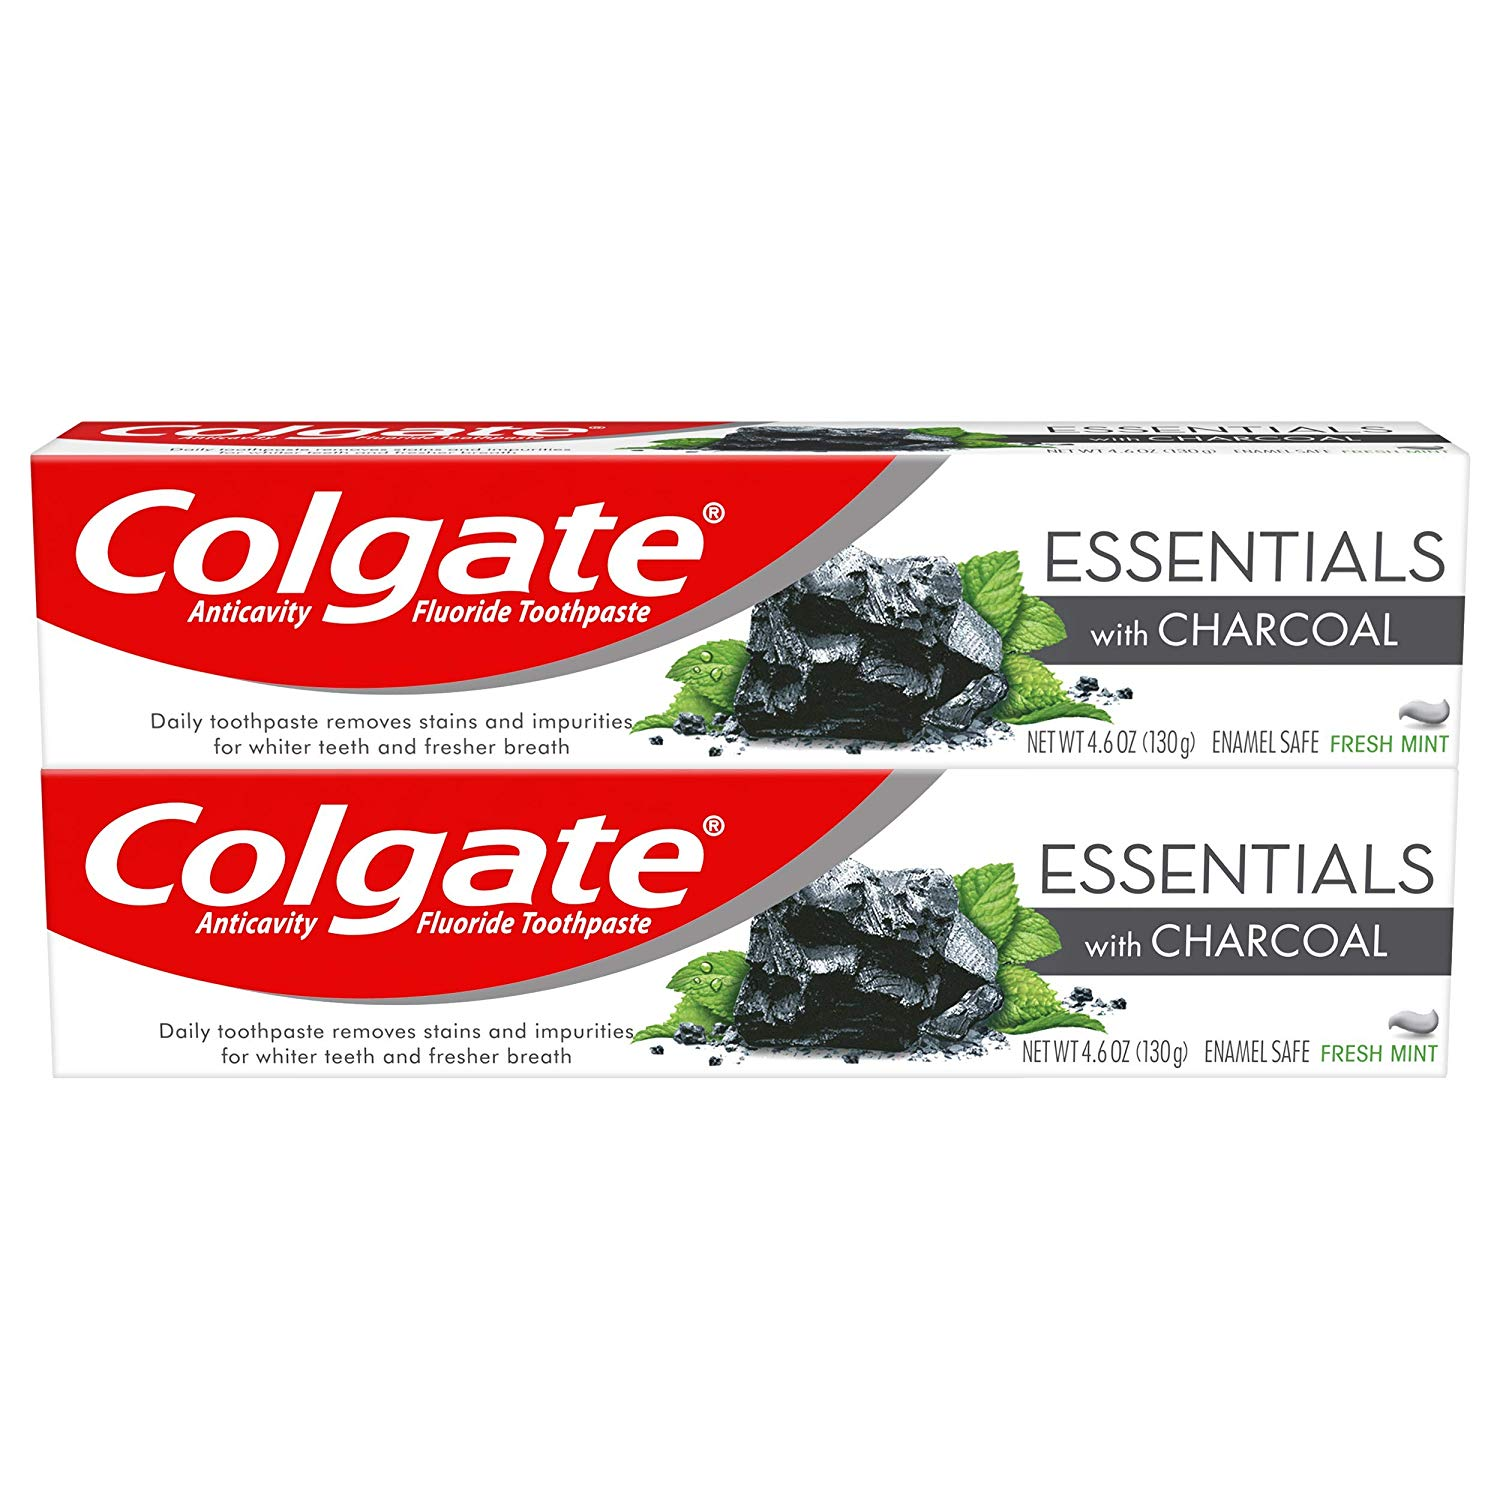 2 Pack Colgate Teeth Whitening Toothpaste only $4.75! (was $10)